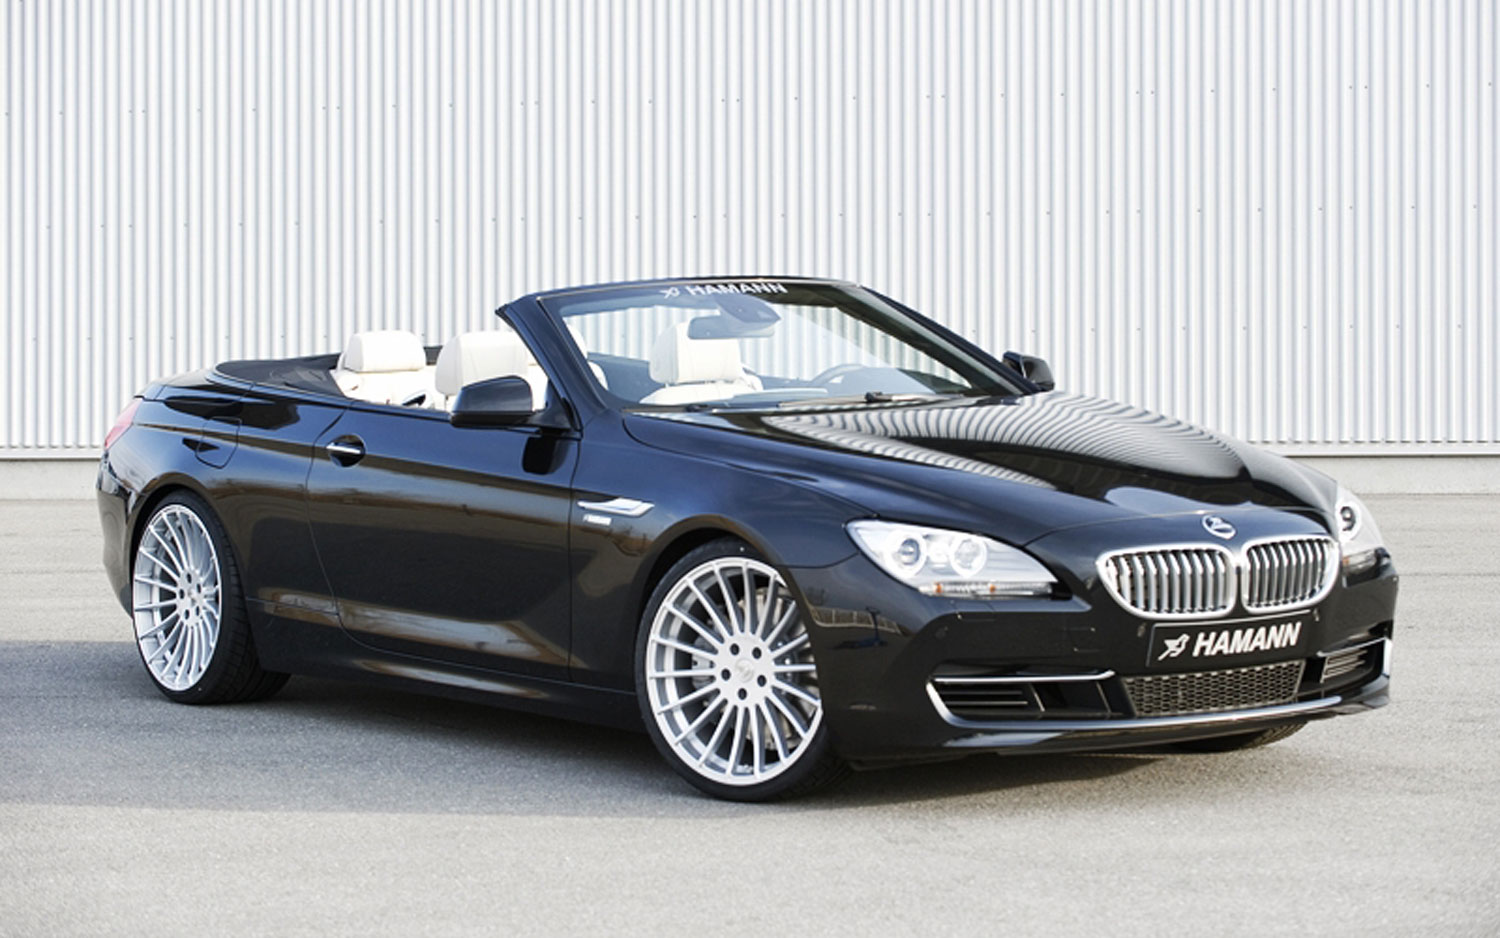 Hamann Tuned BMW 6 Series Convertible Gets Low Gallery